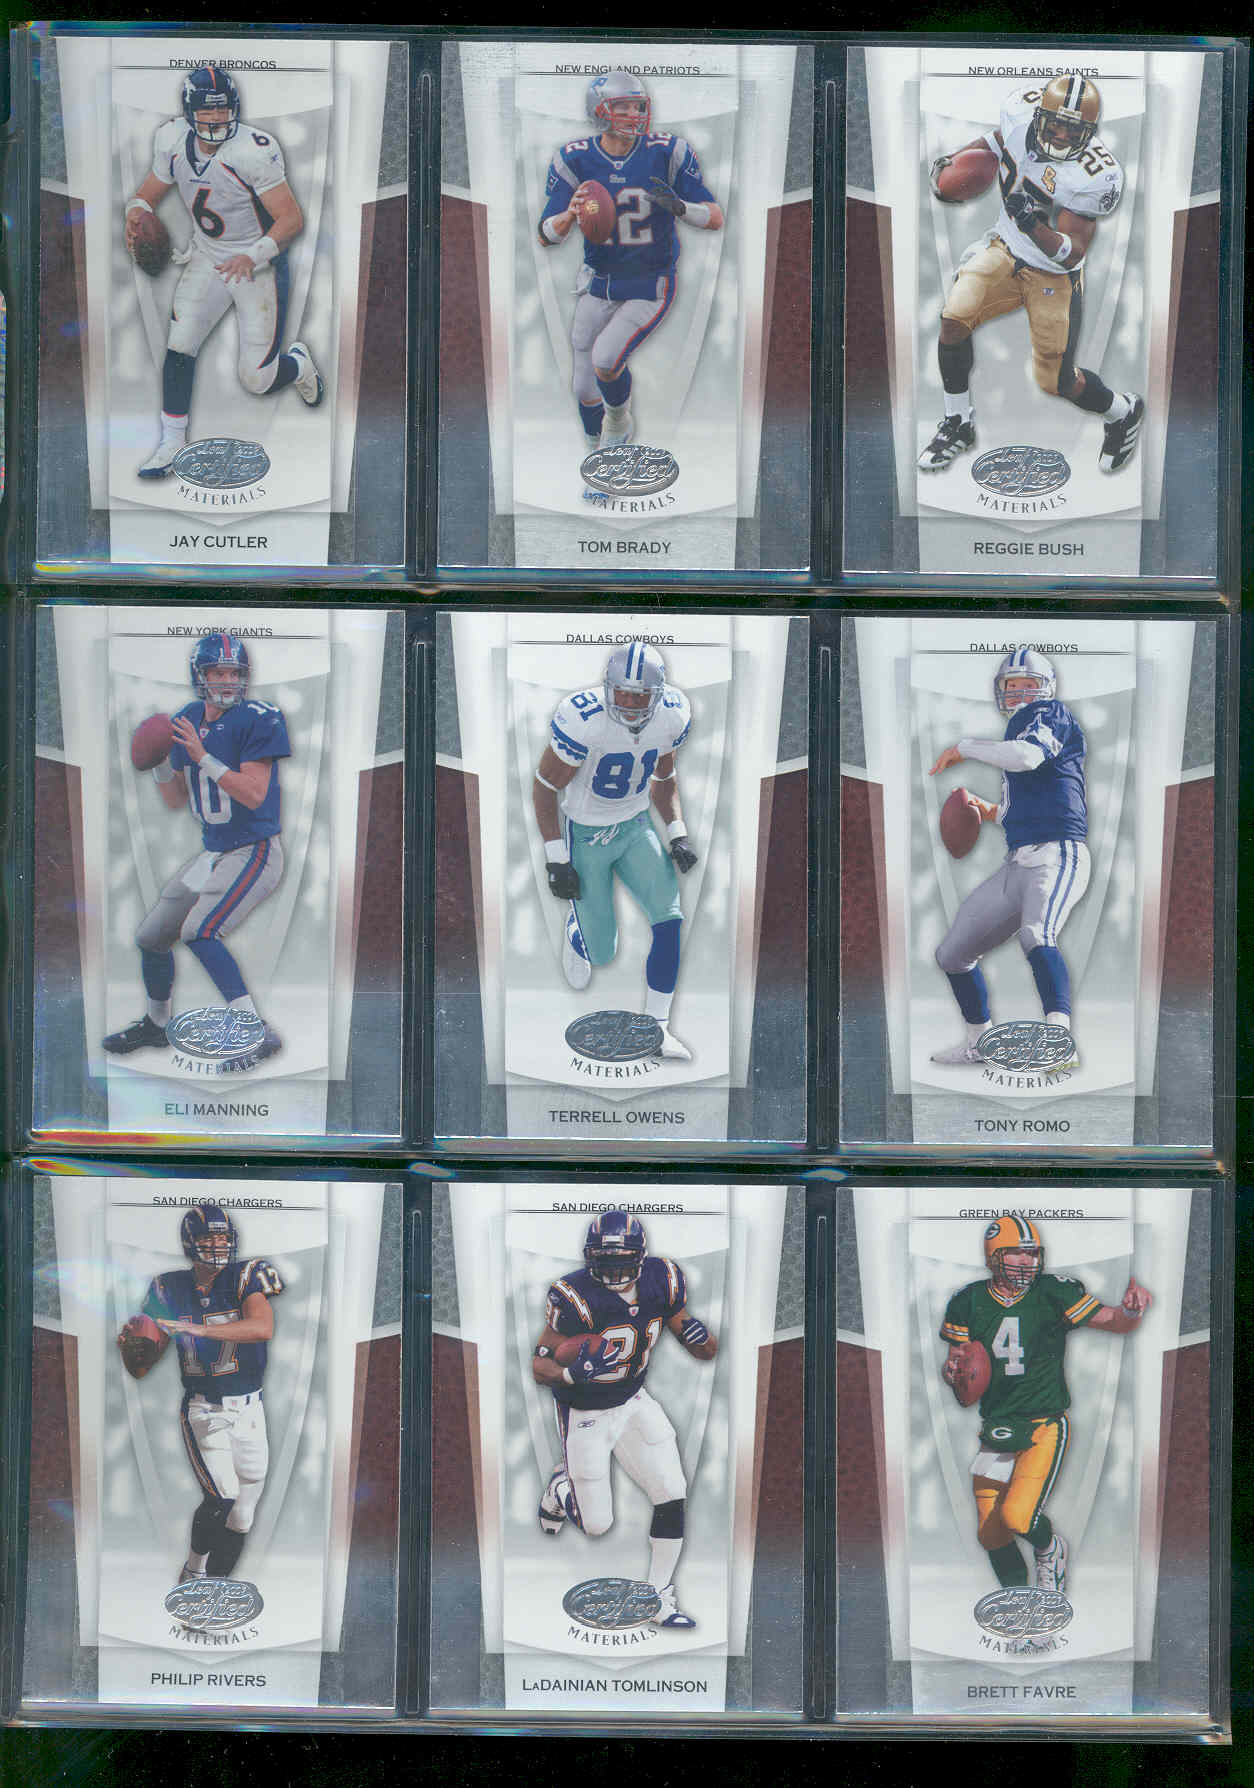 2007 Leaf Certified Materials Set 1-150 w/ Jay Cutler , Tom Brady , Reggie Bush , Eli Manning , Terrell Owens , Tony Romo , Philip Rivers , LaDainian Tomlinson , Brett Favre Low Shipping